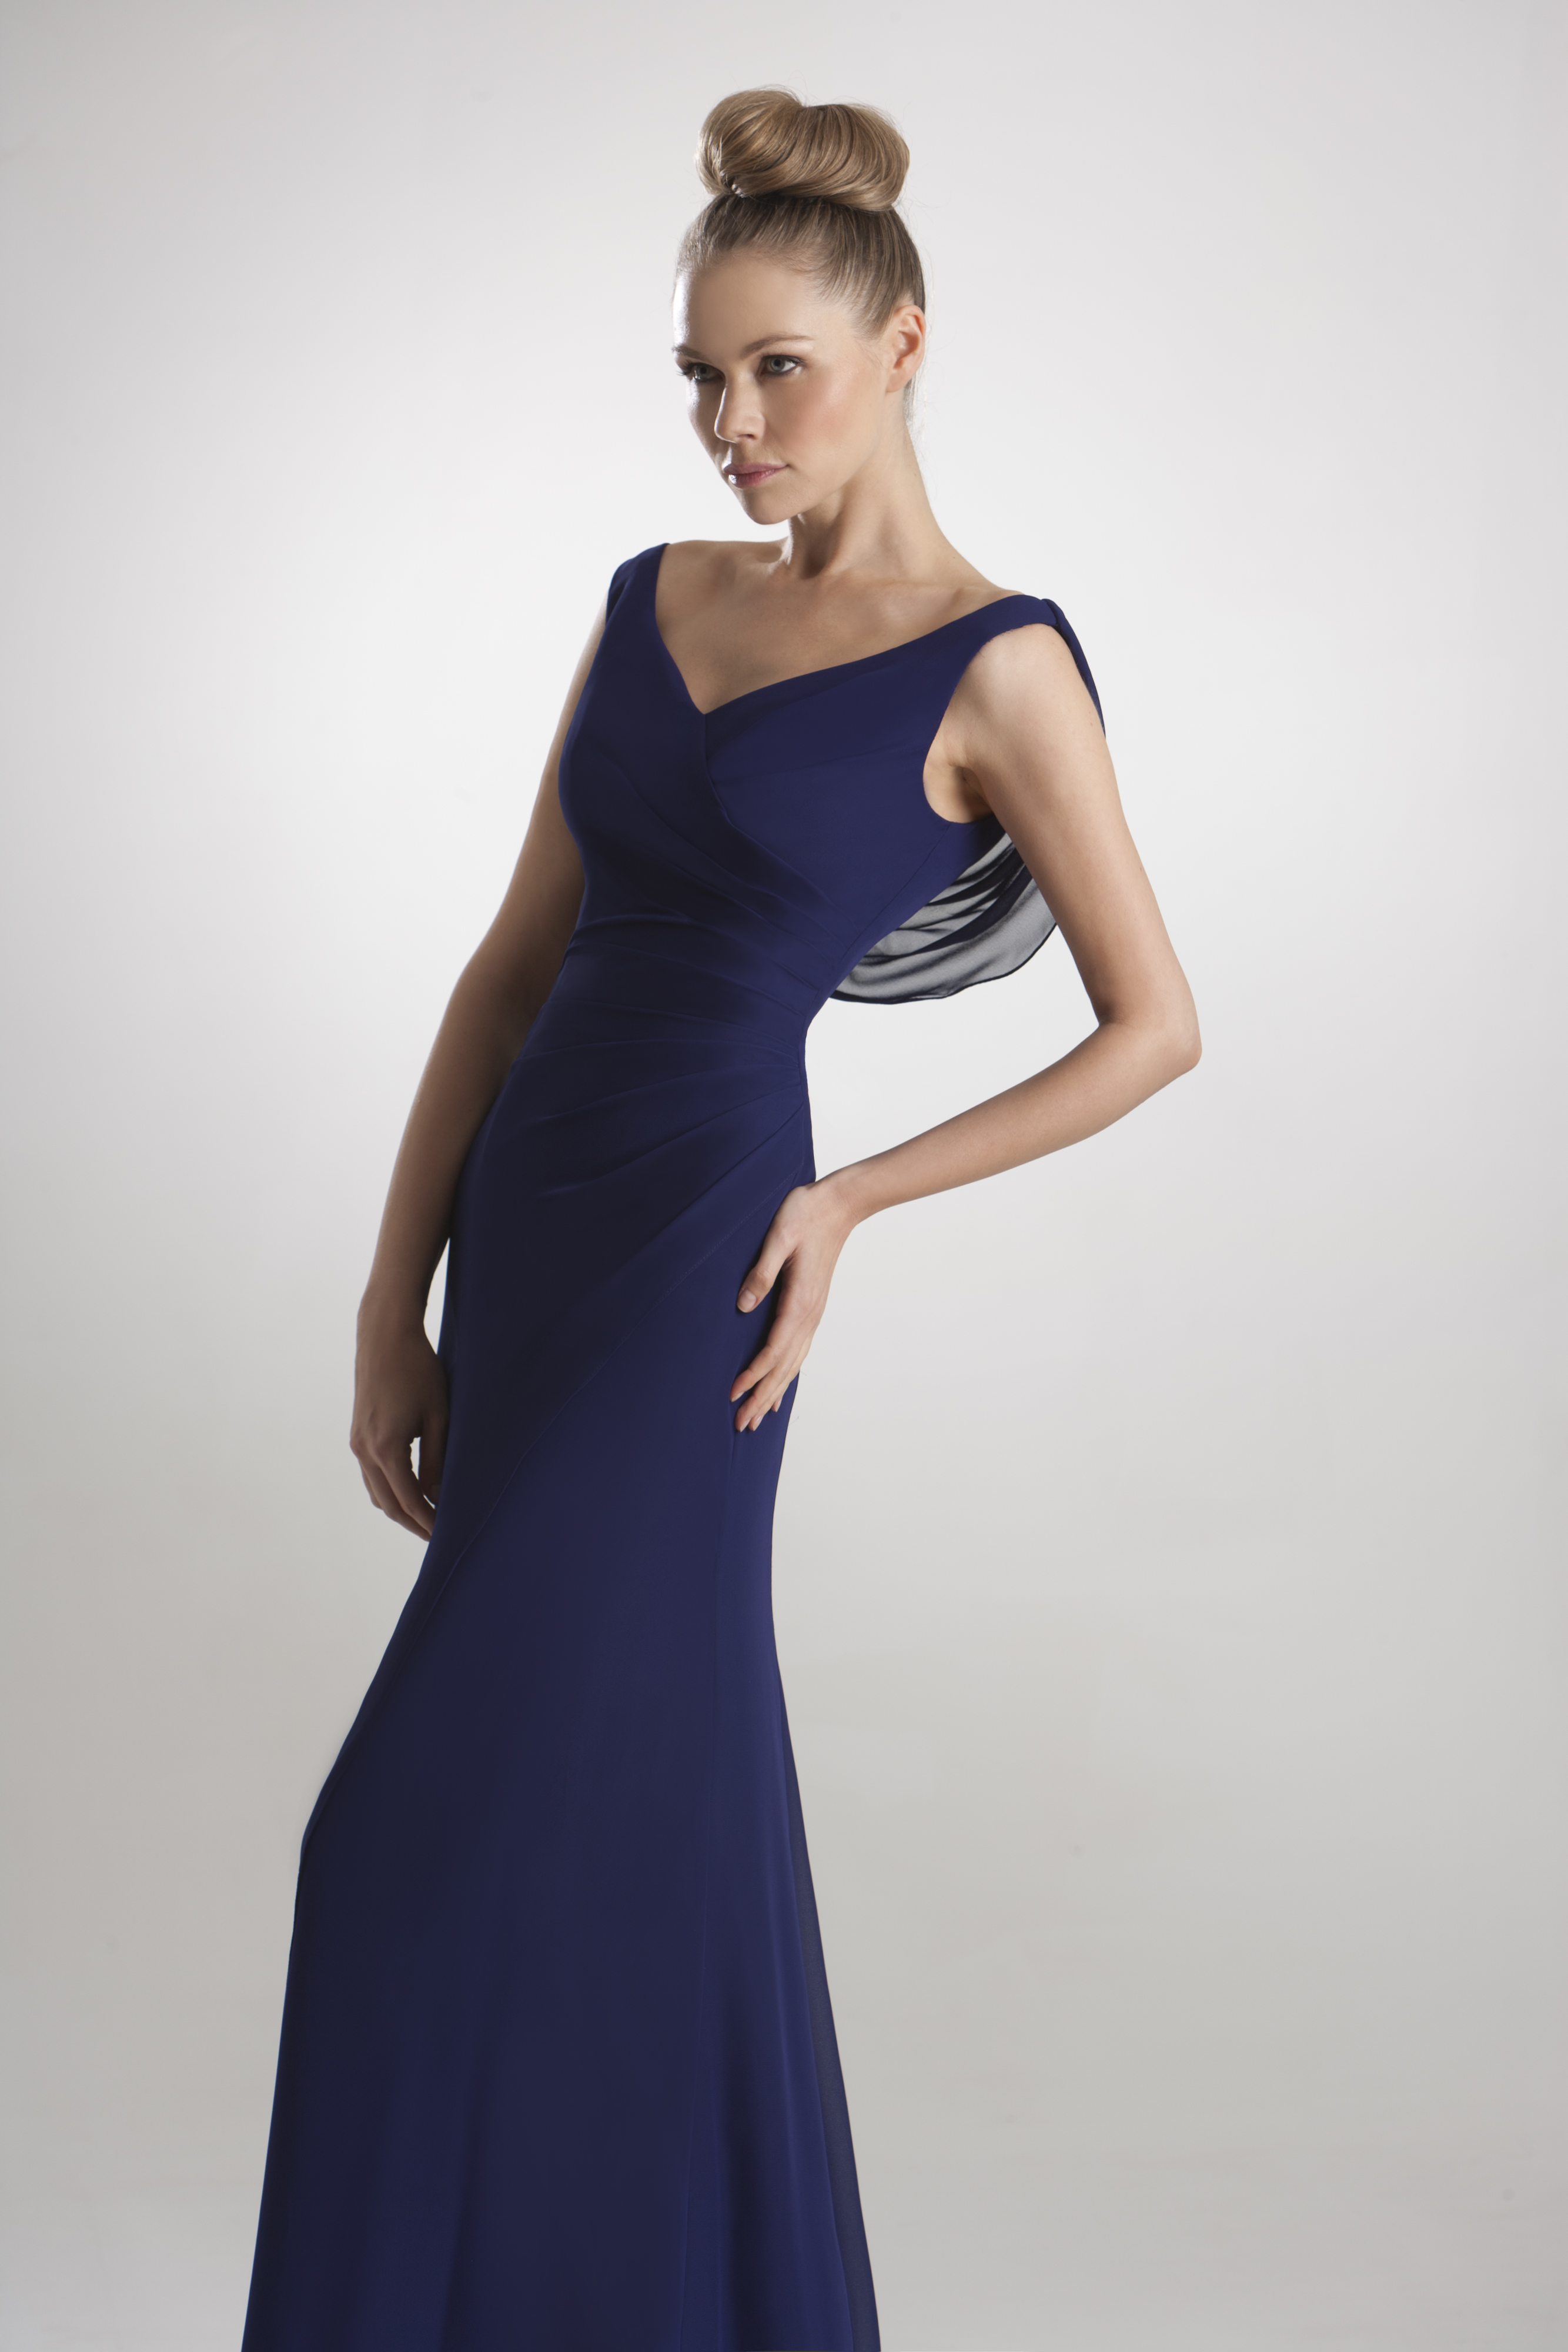 Prom dresses county durham gown and dress gallery prom dresses county durham gallery ombrellifo Image collections